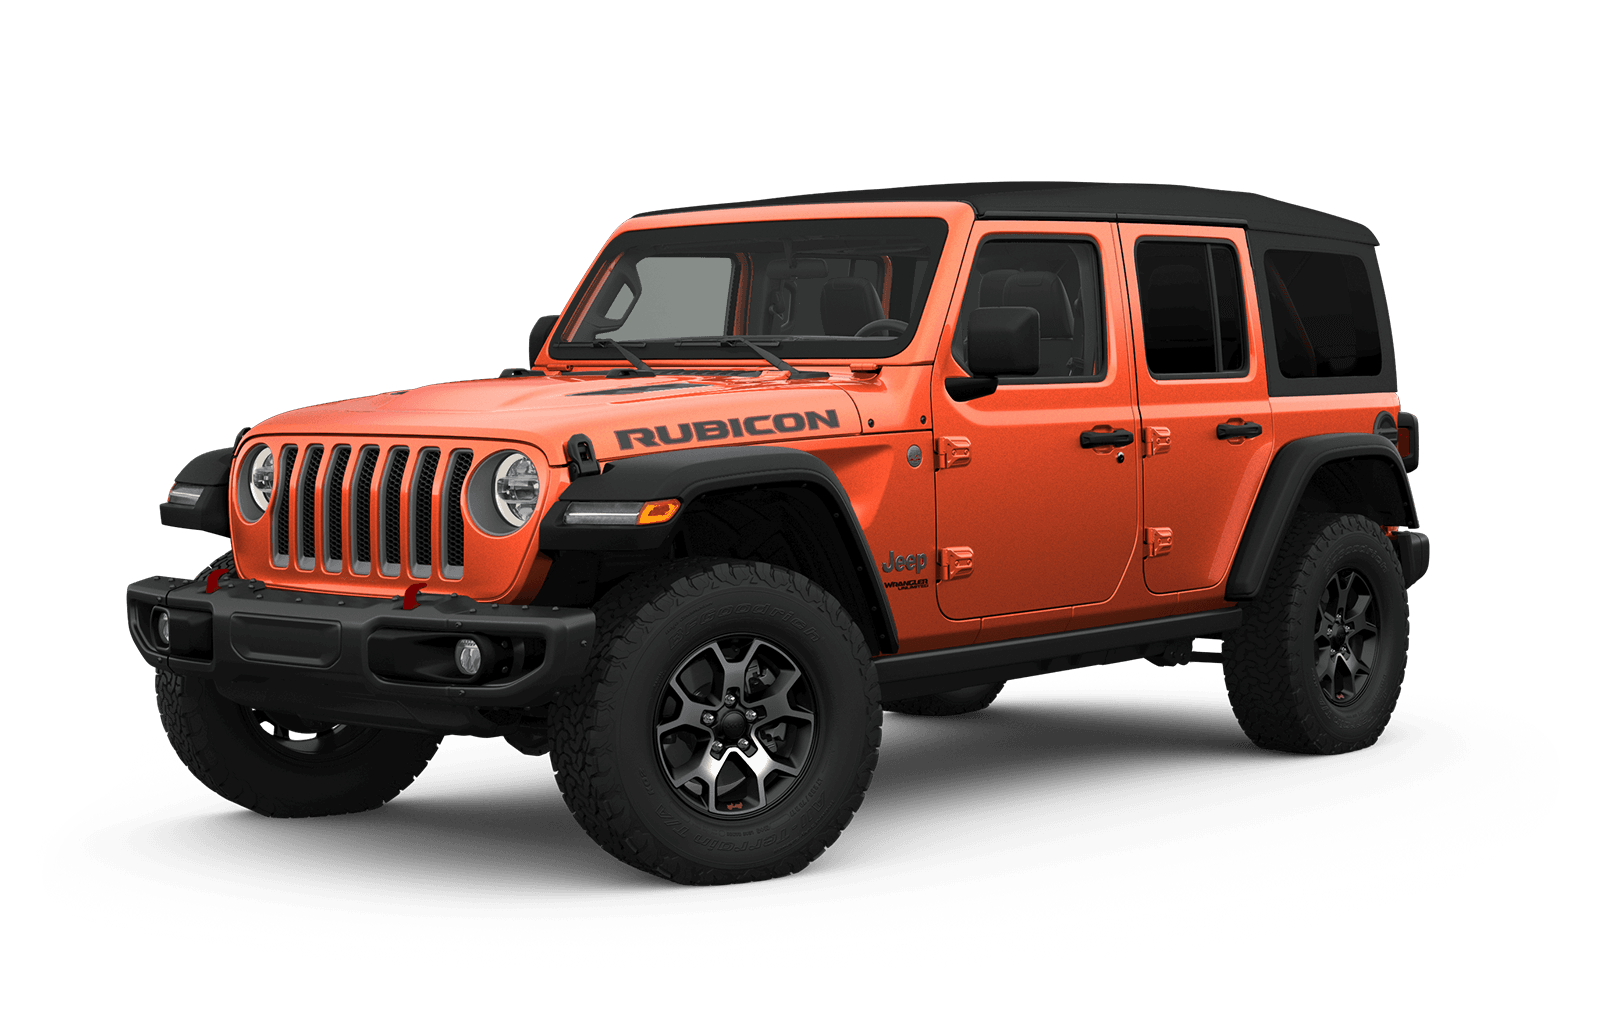 2019 Jeep Wrangler Full View in orange with Wheels